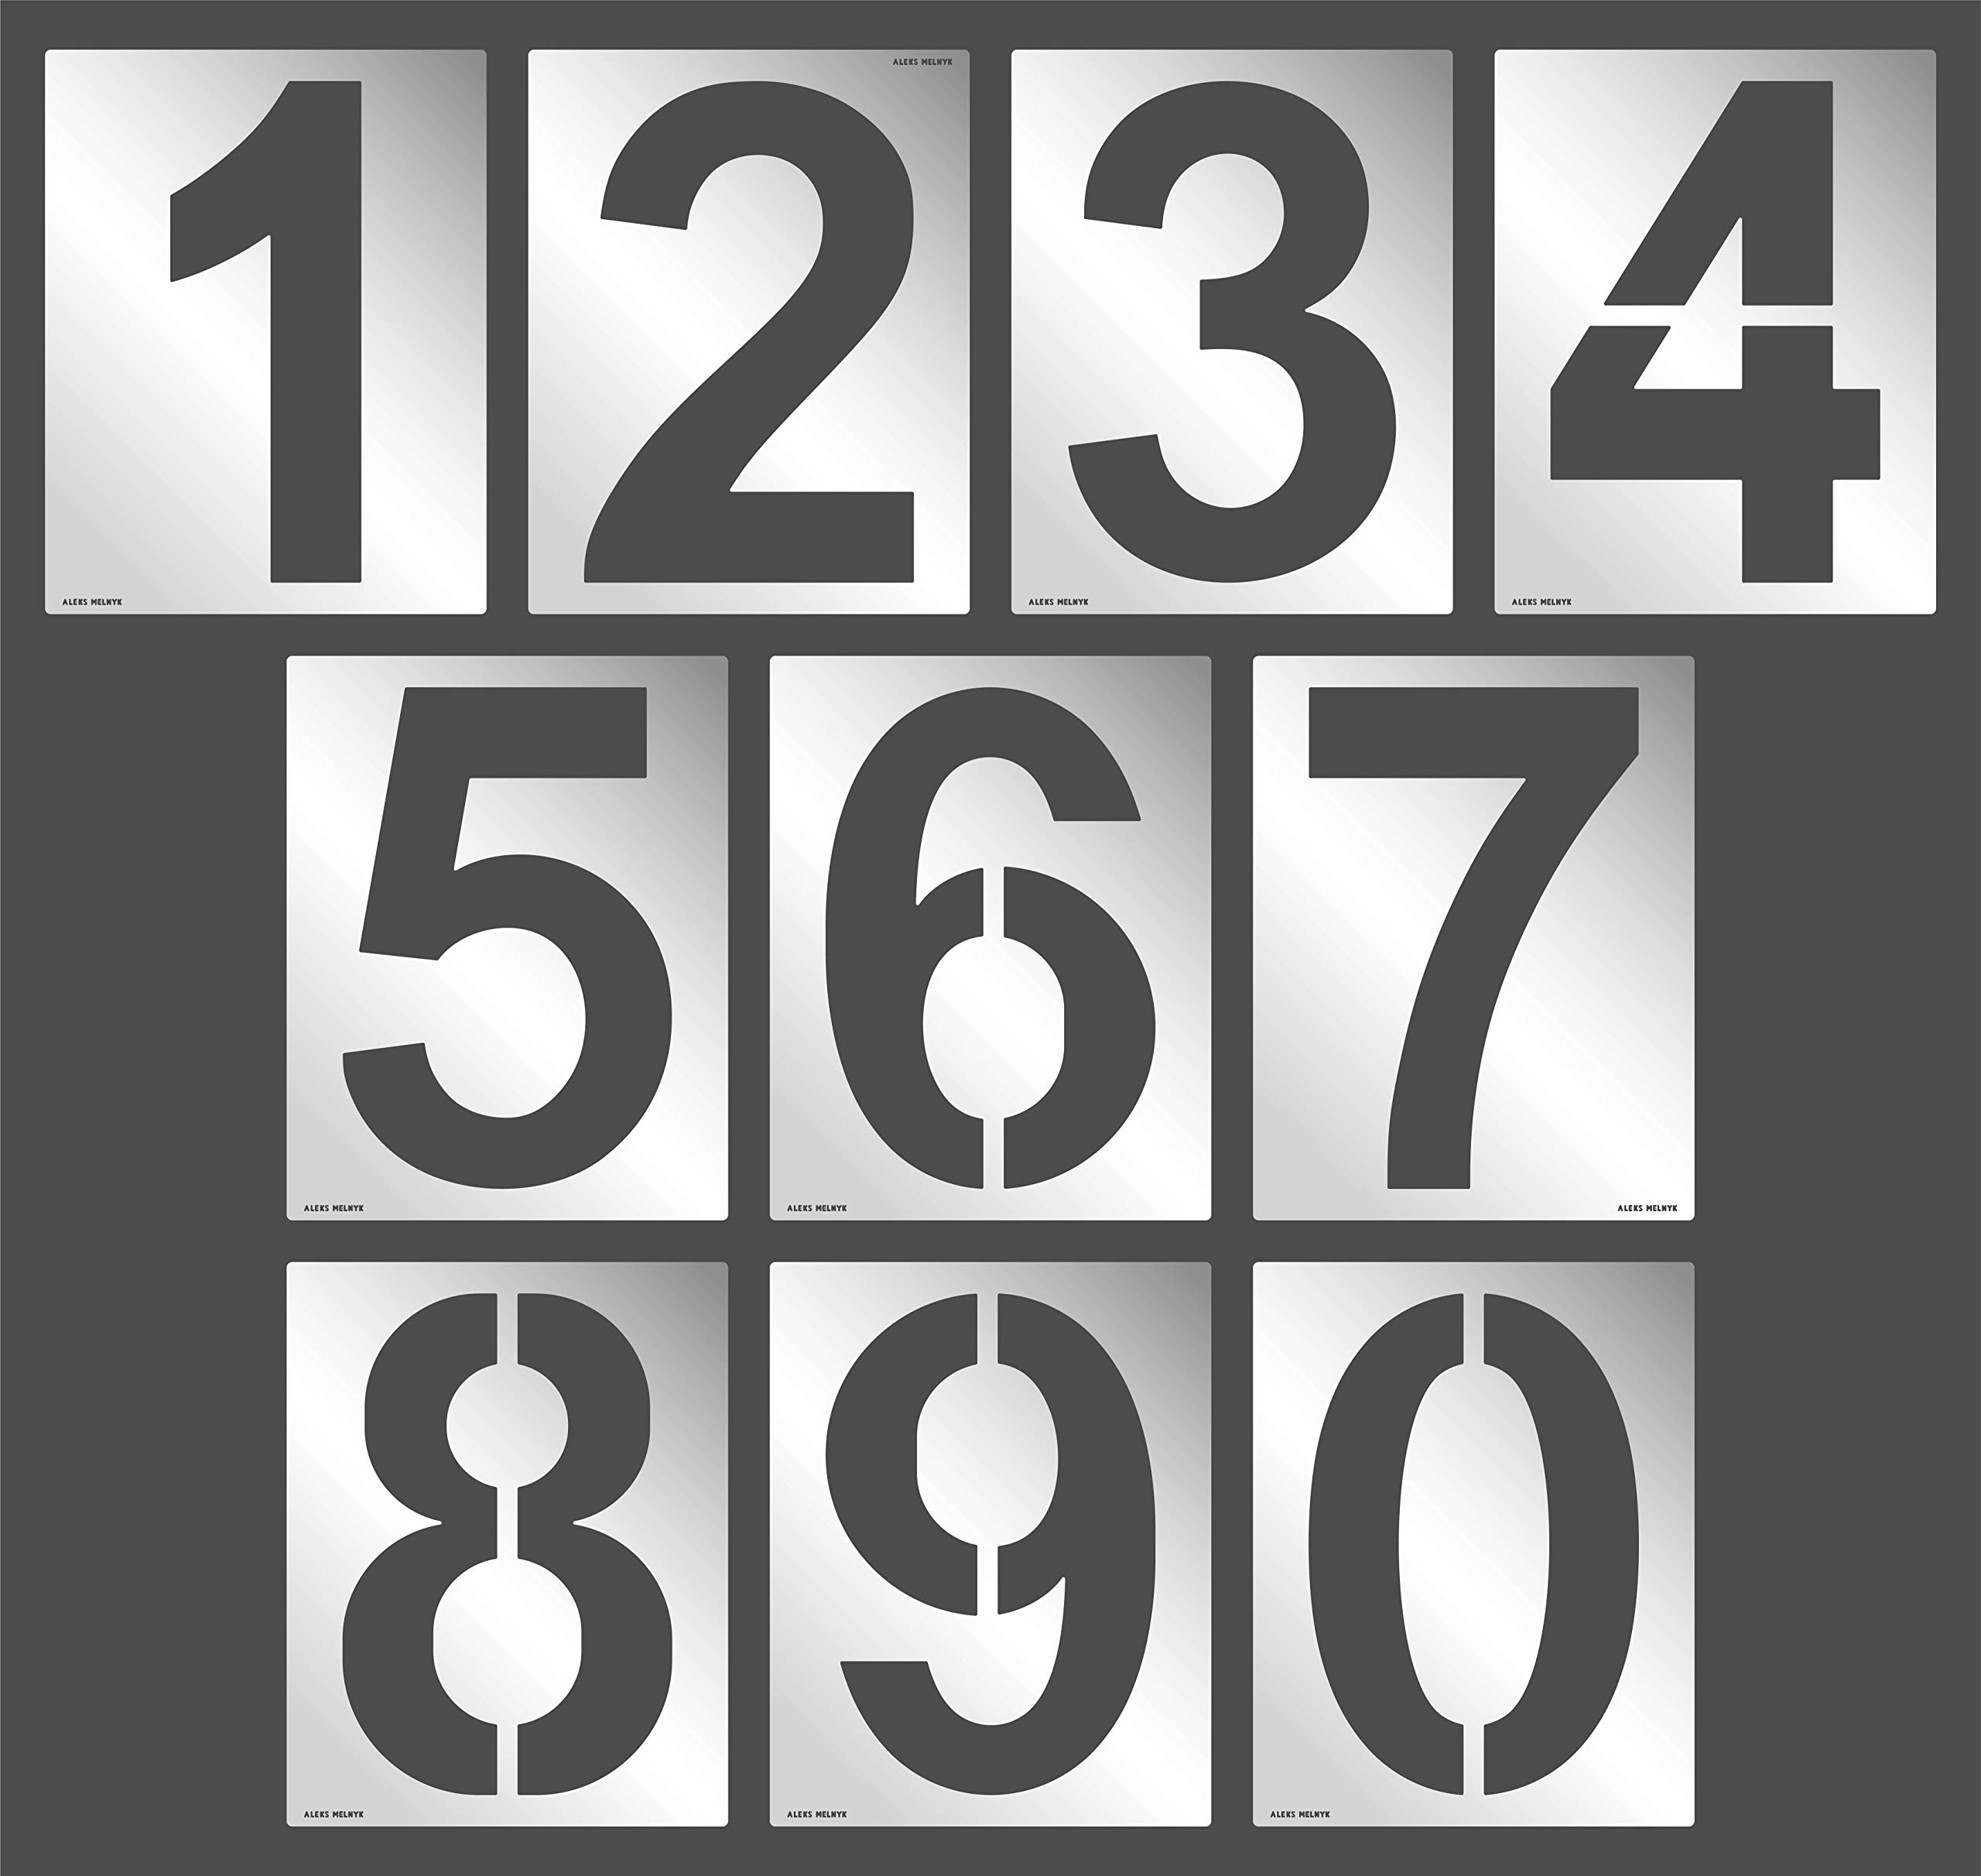 Aleks Melnyk #64 Large Numbers / 10 Piece Number Kit/Metal Templates/Stainless Steel Stencils - Font Height Size 12''